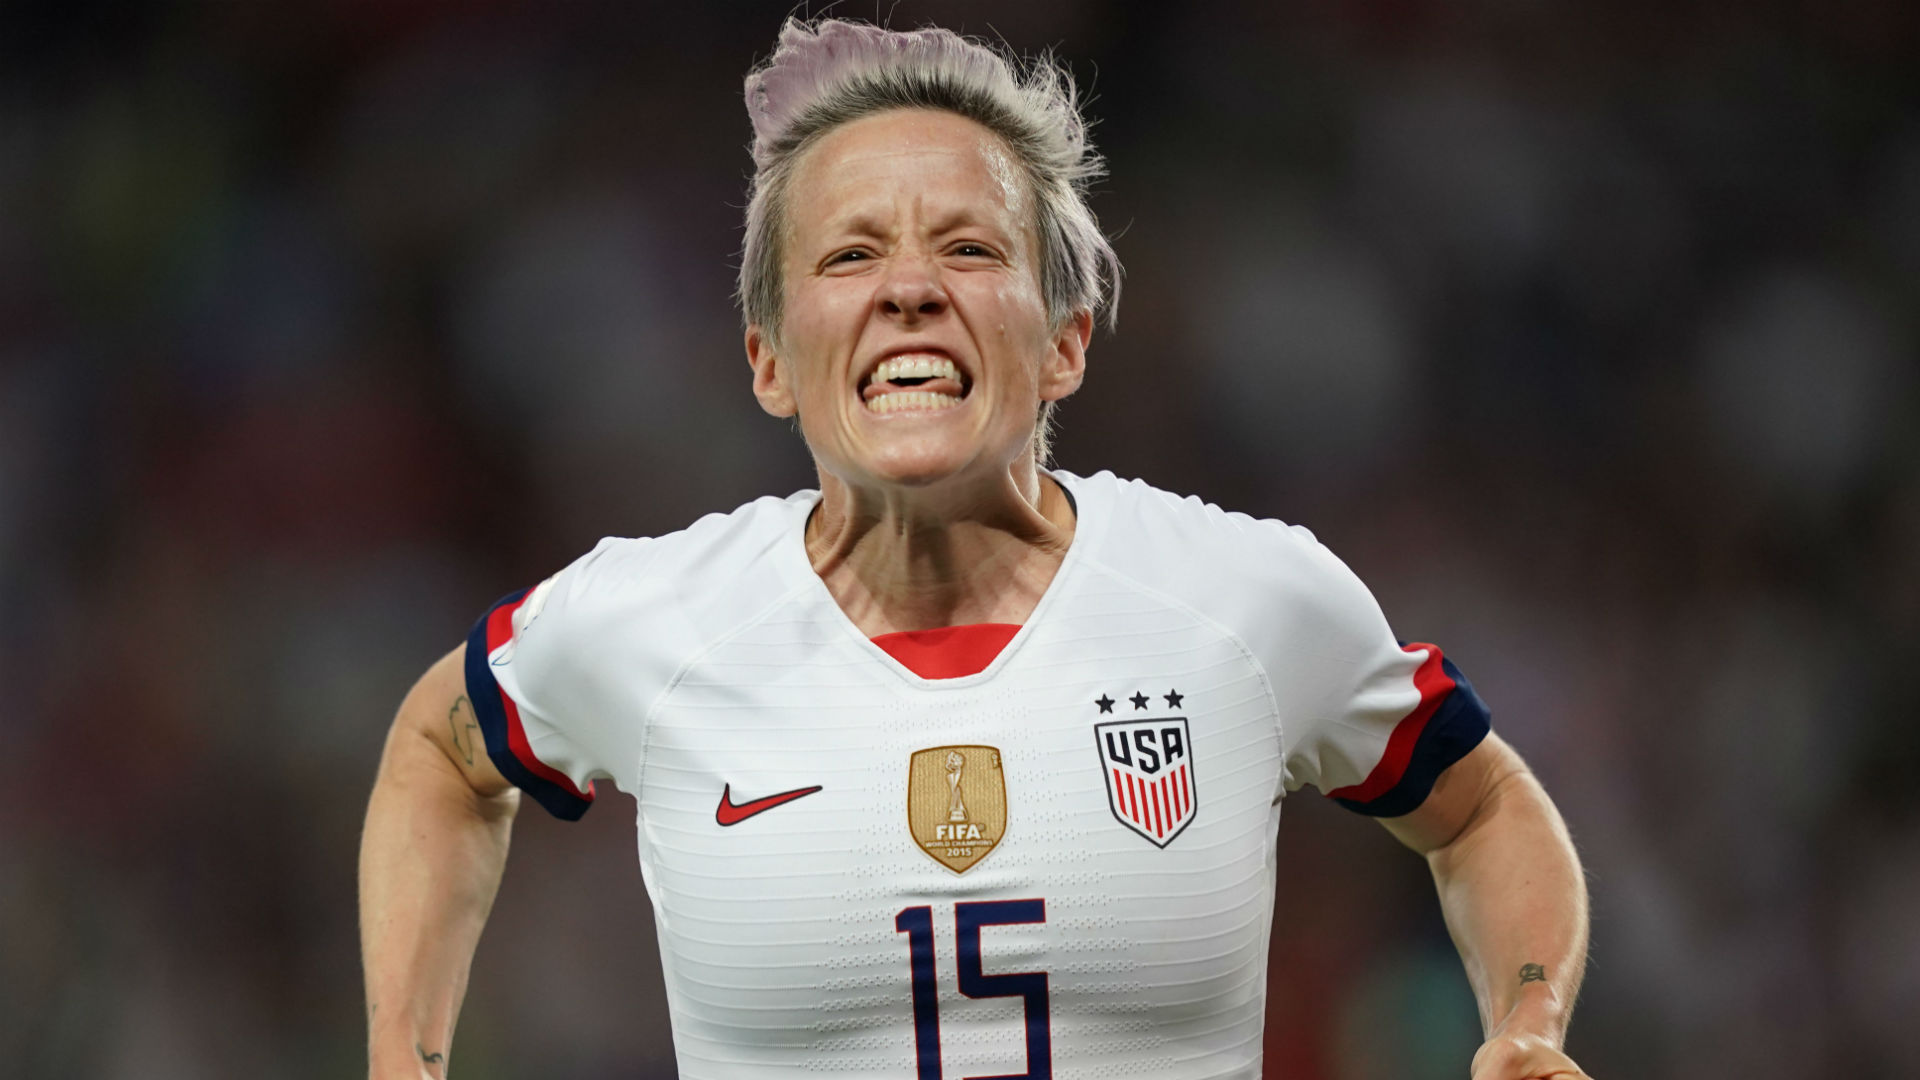 Megan Rapinoe's World Cup Goal Celebration Is Now A Trump-Trolling Meme